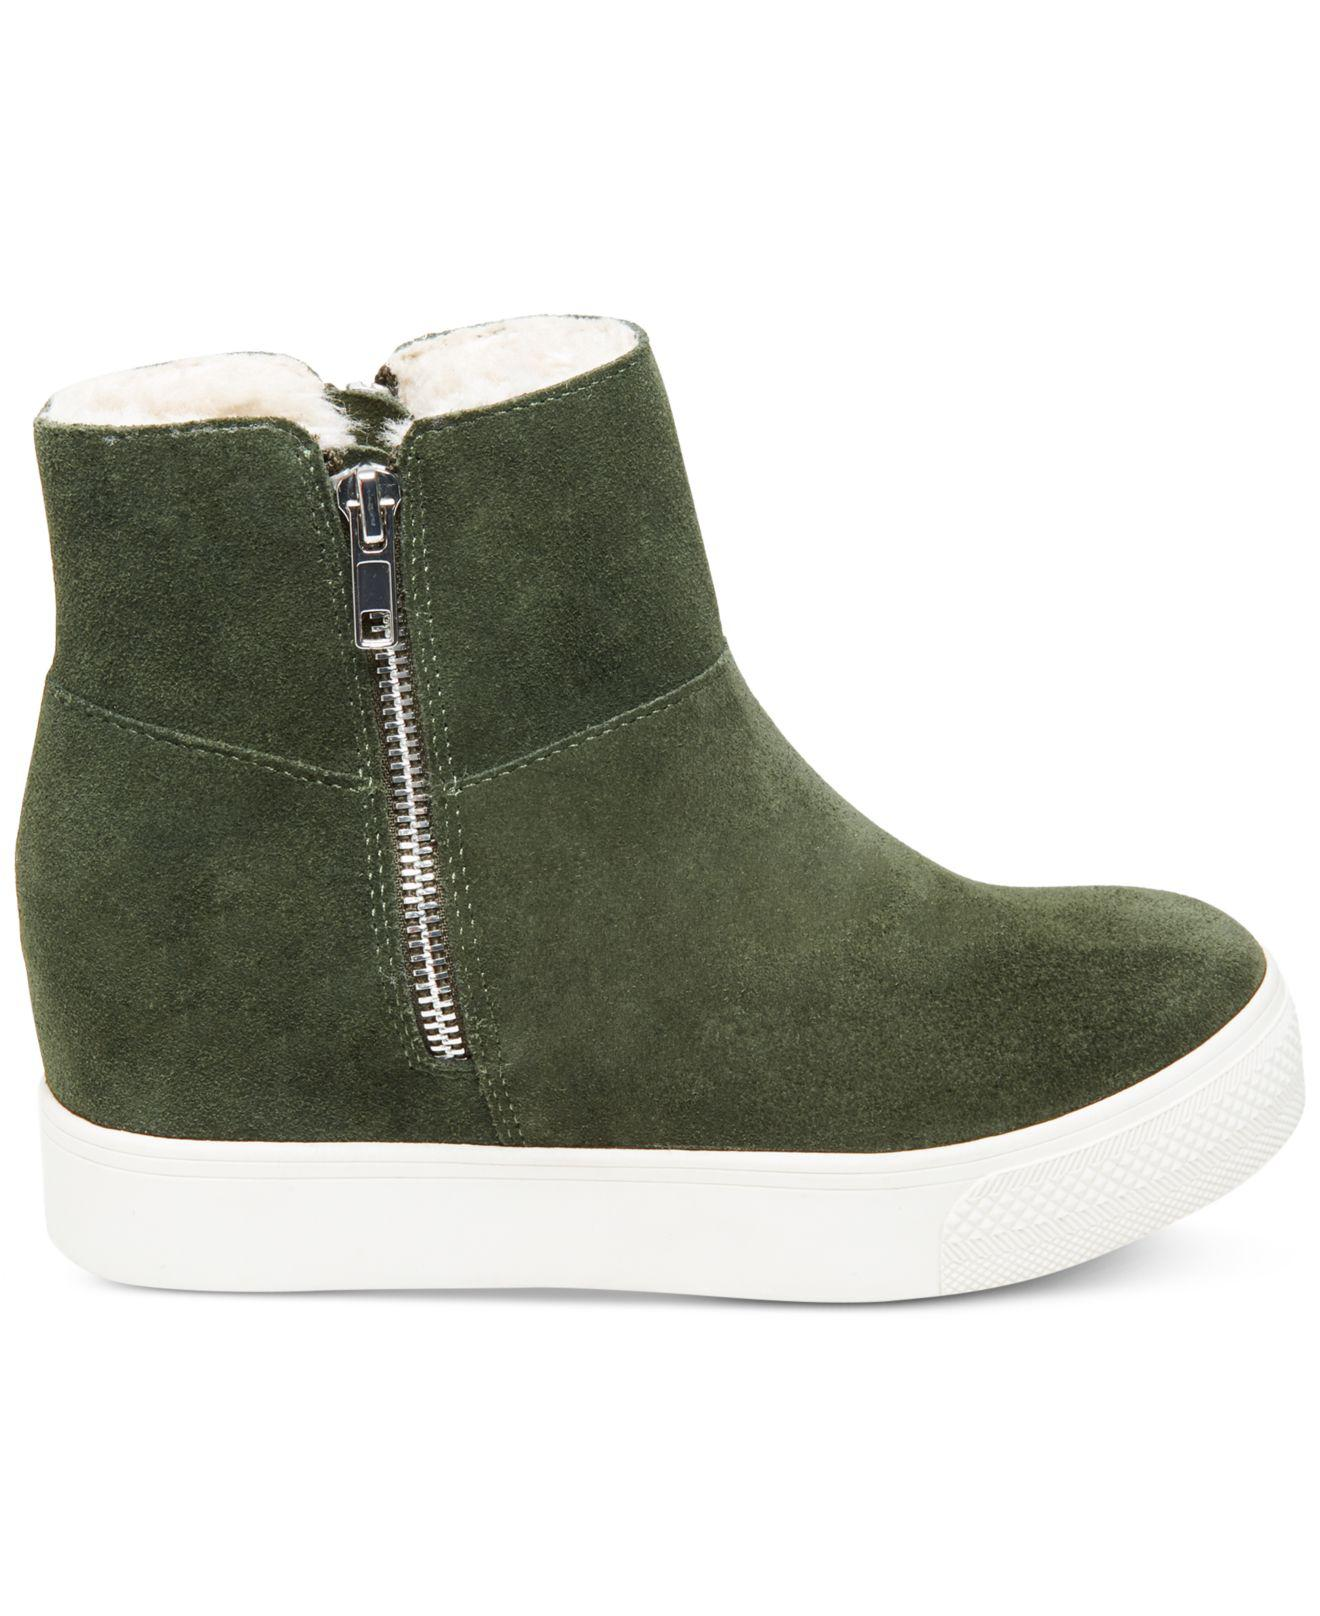 09319742489 Steve Madden Green Wanda Faux-fur Wedge Sneakers